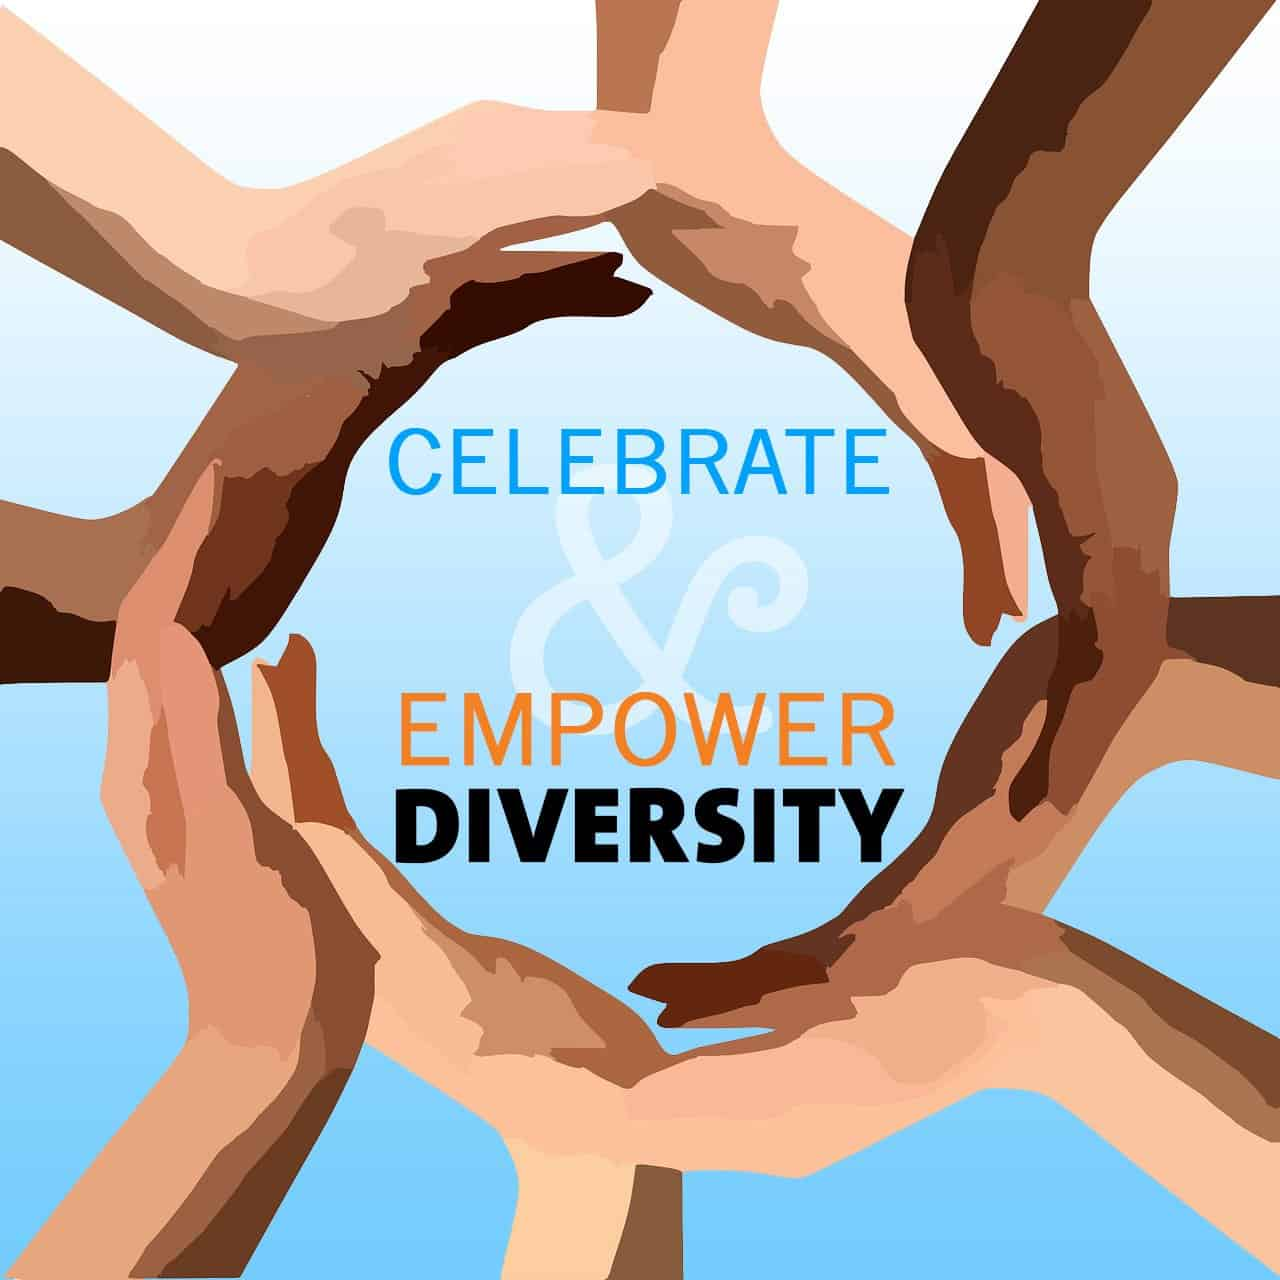 celebrate & empower diversity graphic